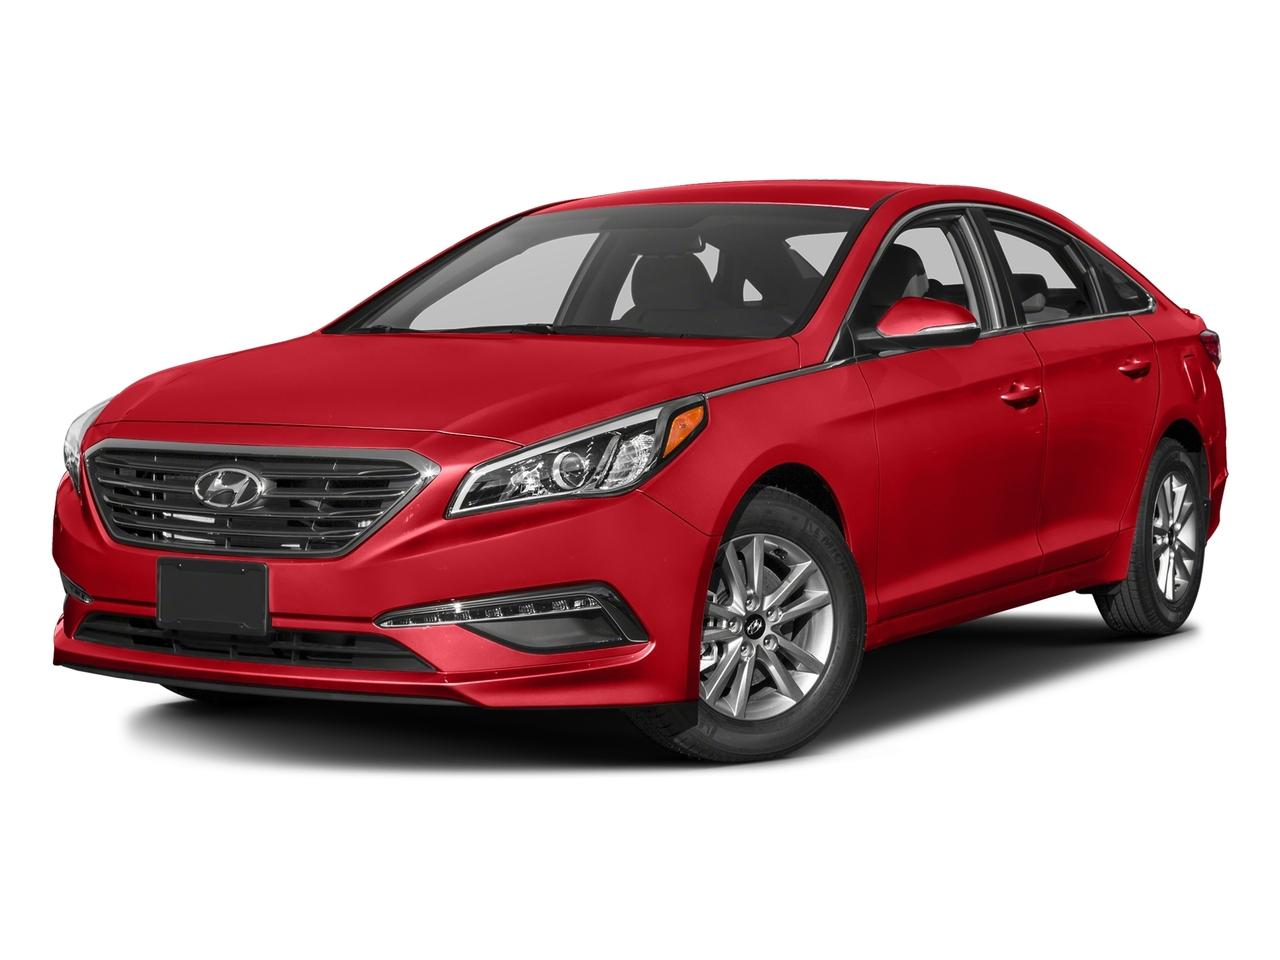 2017 Hyundai Sonata Vehicle Photo in Killeen, TX 76541